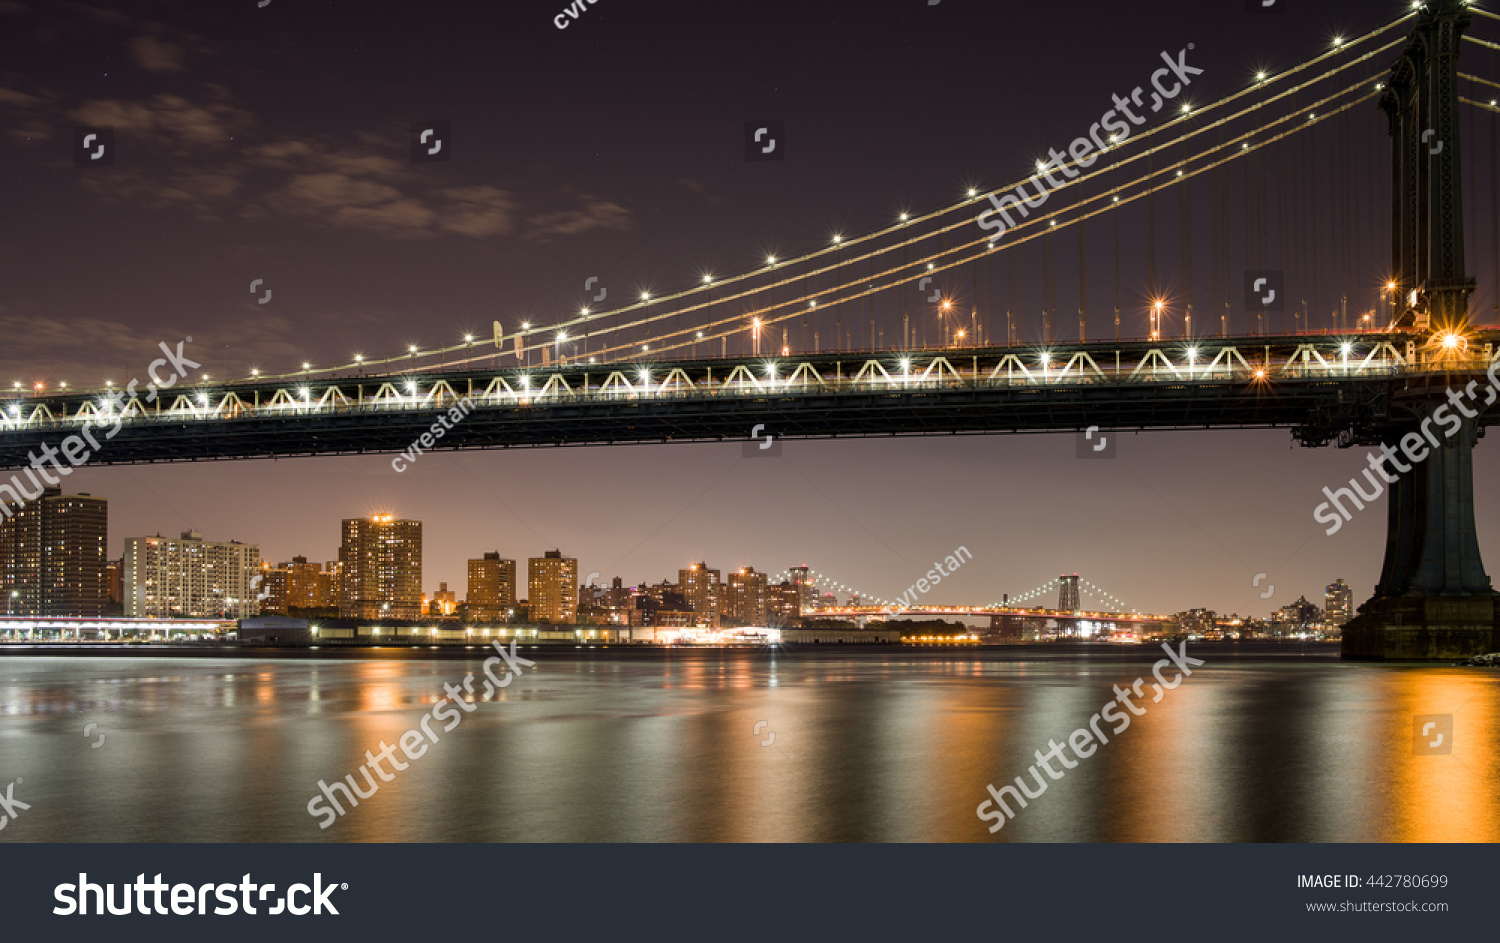 suspension bridges new york city stock photo 442780699 shutterstock. Black Bedroom Furniture Sets. Home Design Ideas